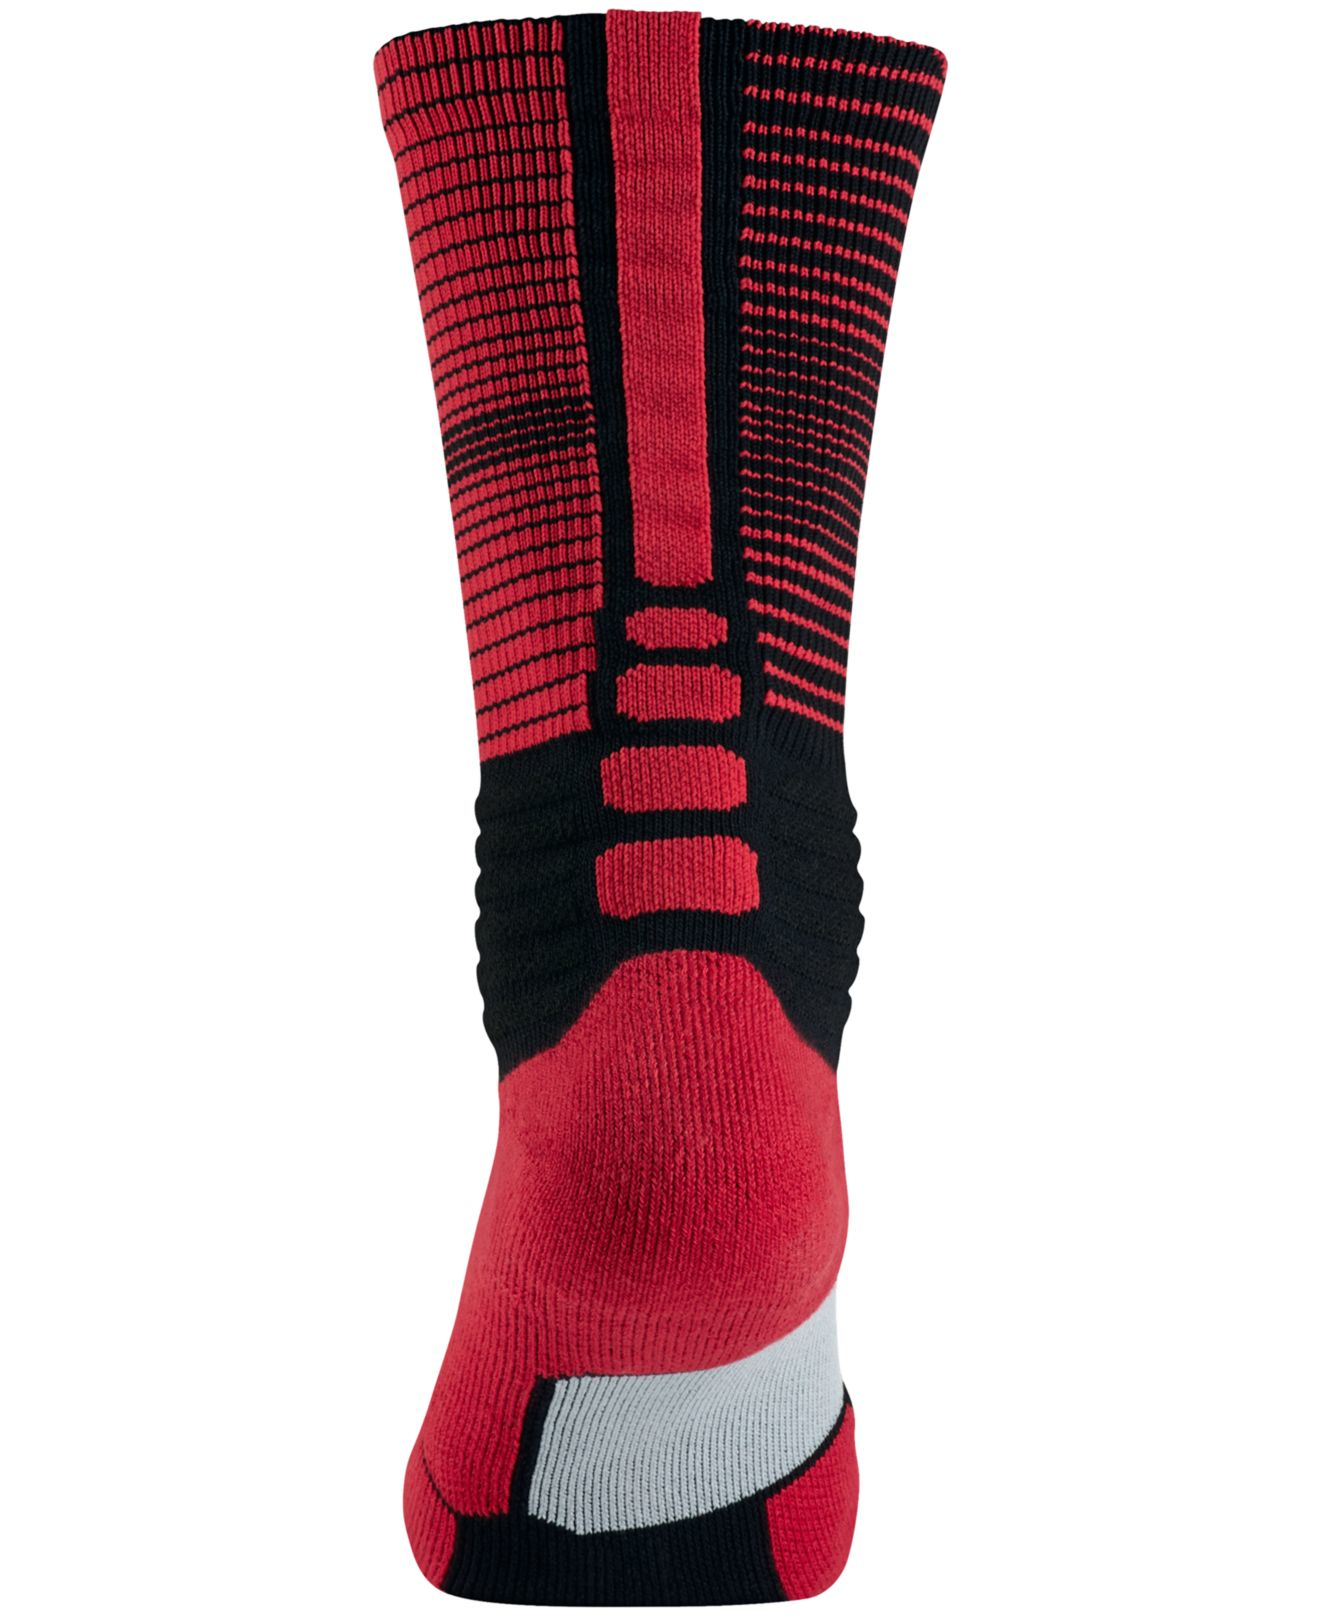 Nike Men's Hyperelite Disruptor Basketball Socks in Red ...